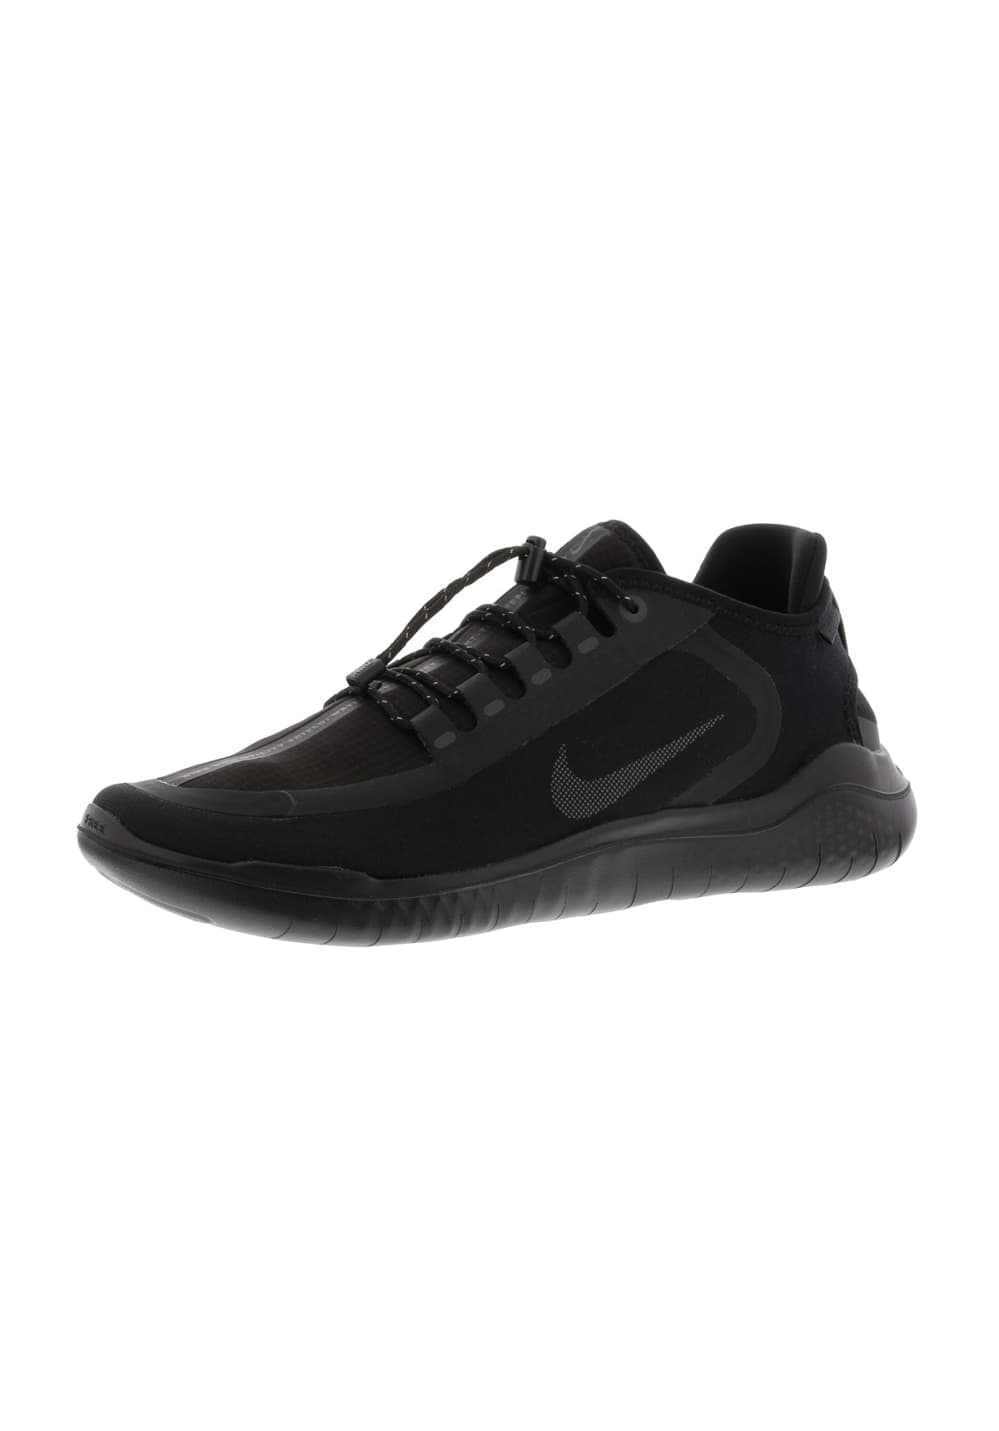 bebeff91af42c Next. -50%. This product is currently out of stock. Nike. Free Rn 2018  Shield - Running shoes for Men